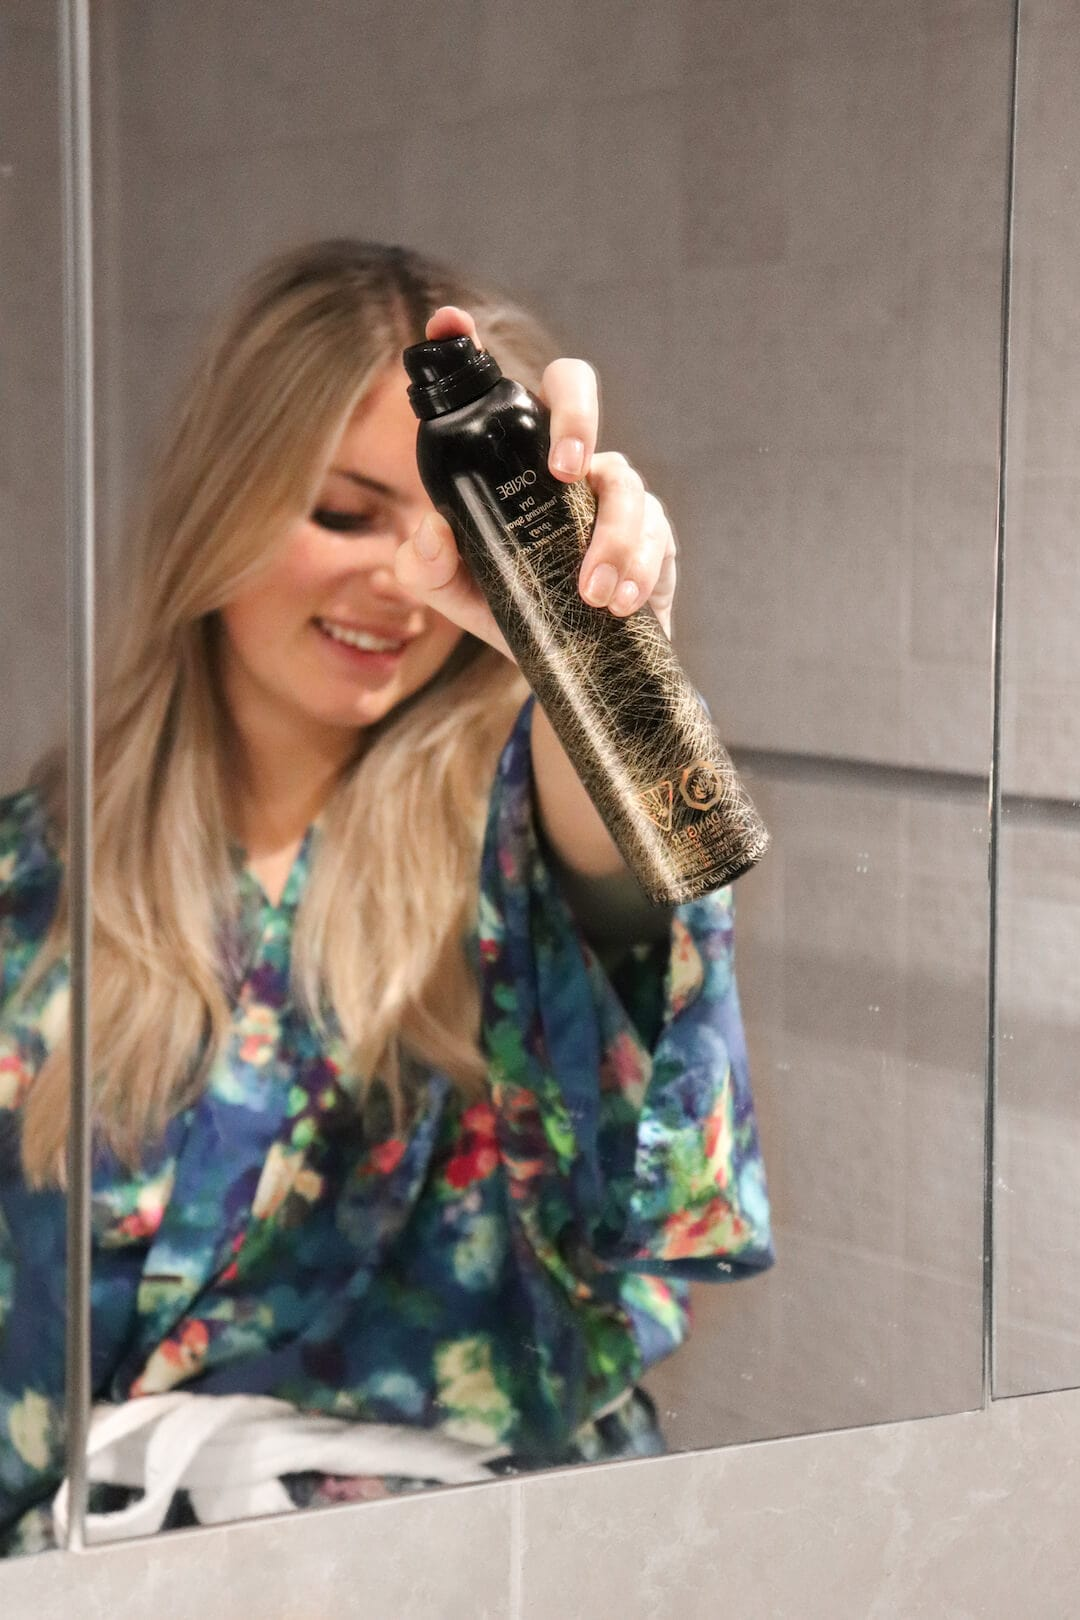 tips-how-to-get-clean-looking-hair-after-working-out-without-washing